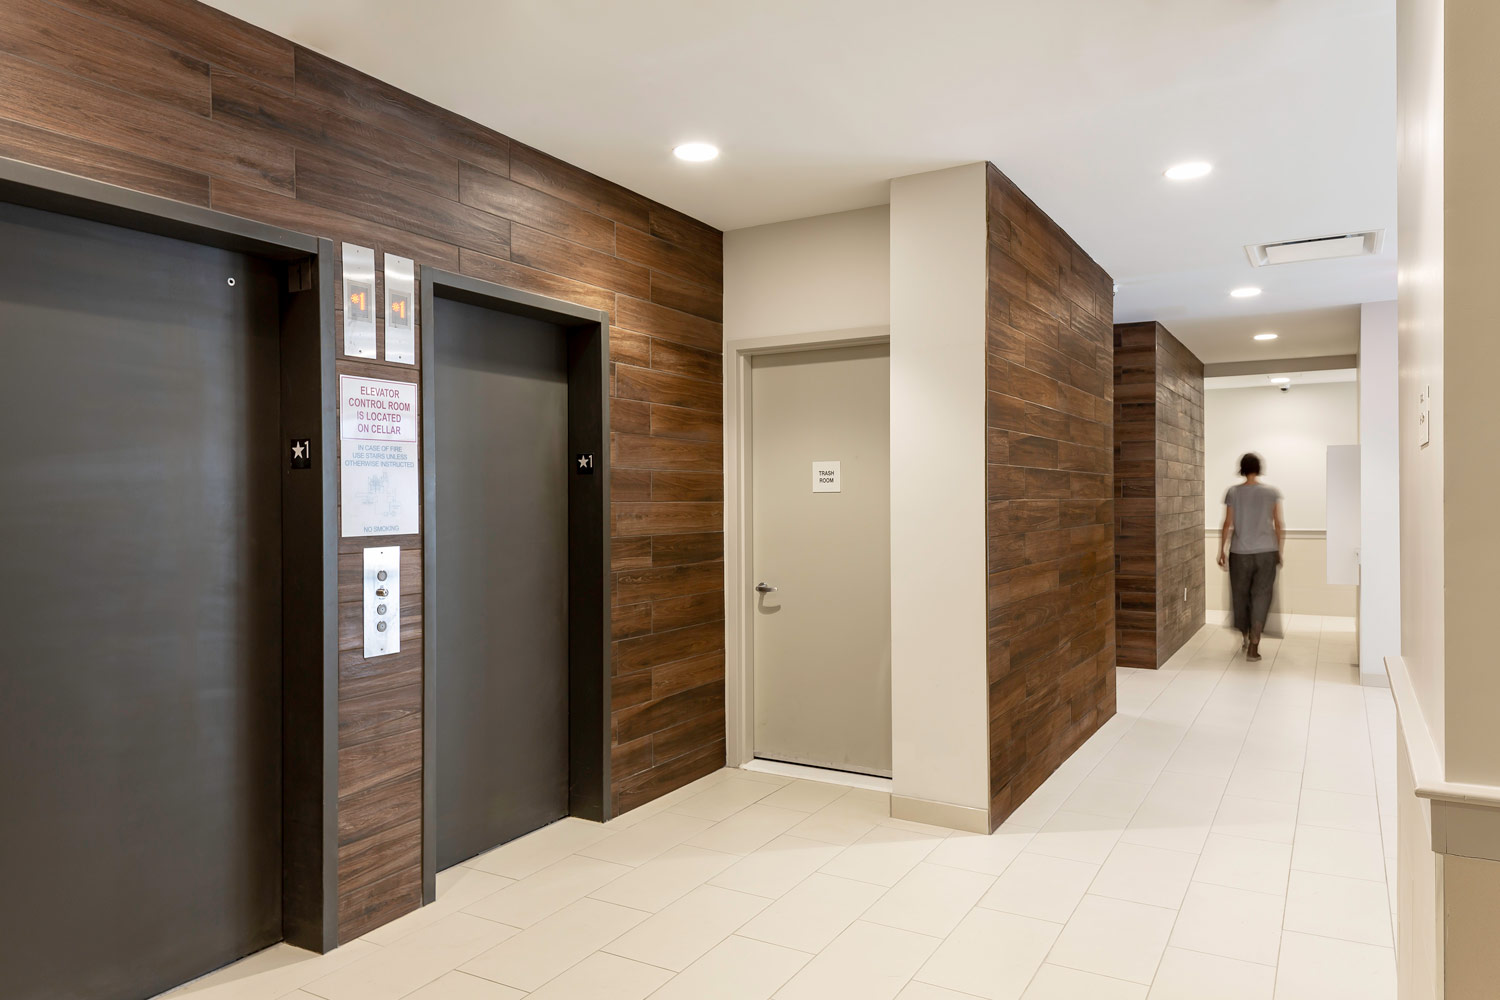 The elevator lobby at Gates Avenue Residence is clad in a wood finish